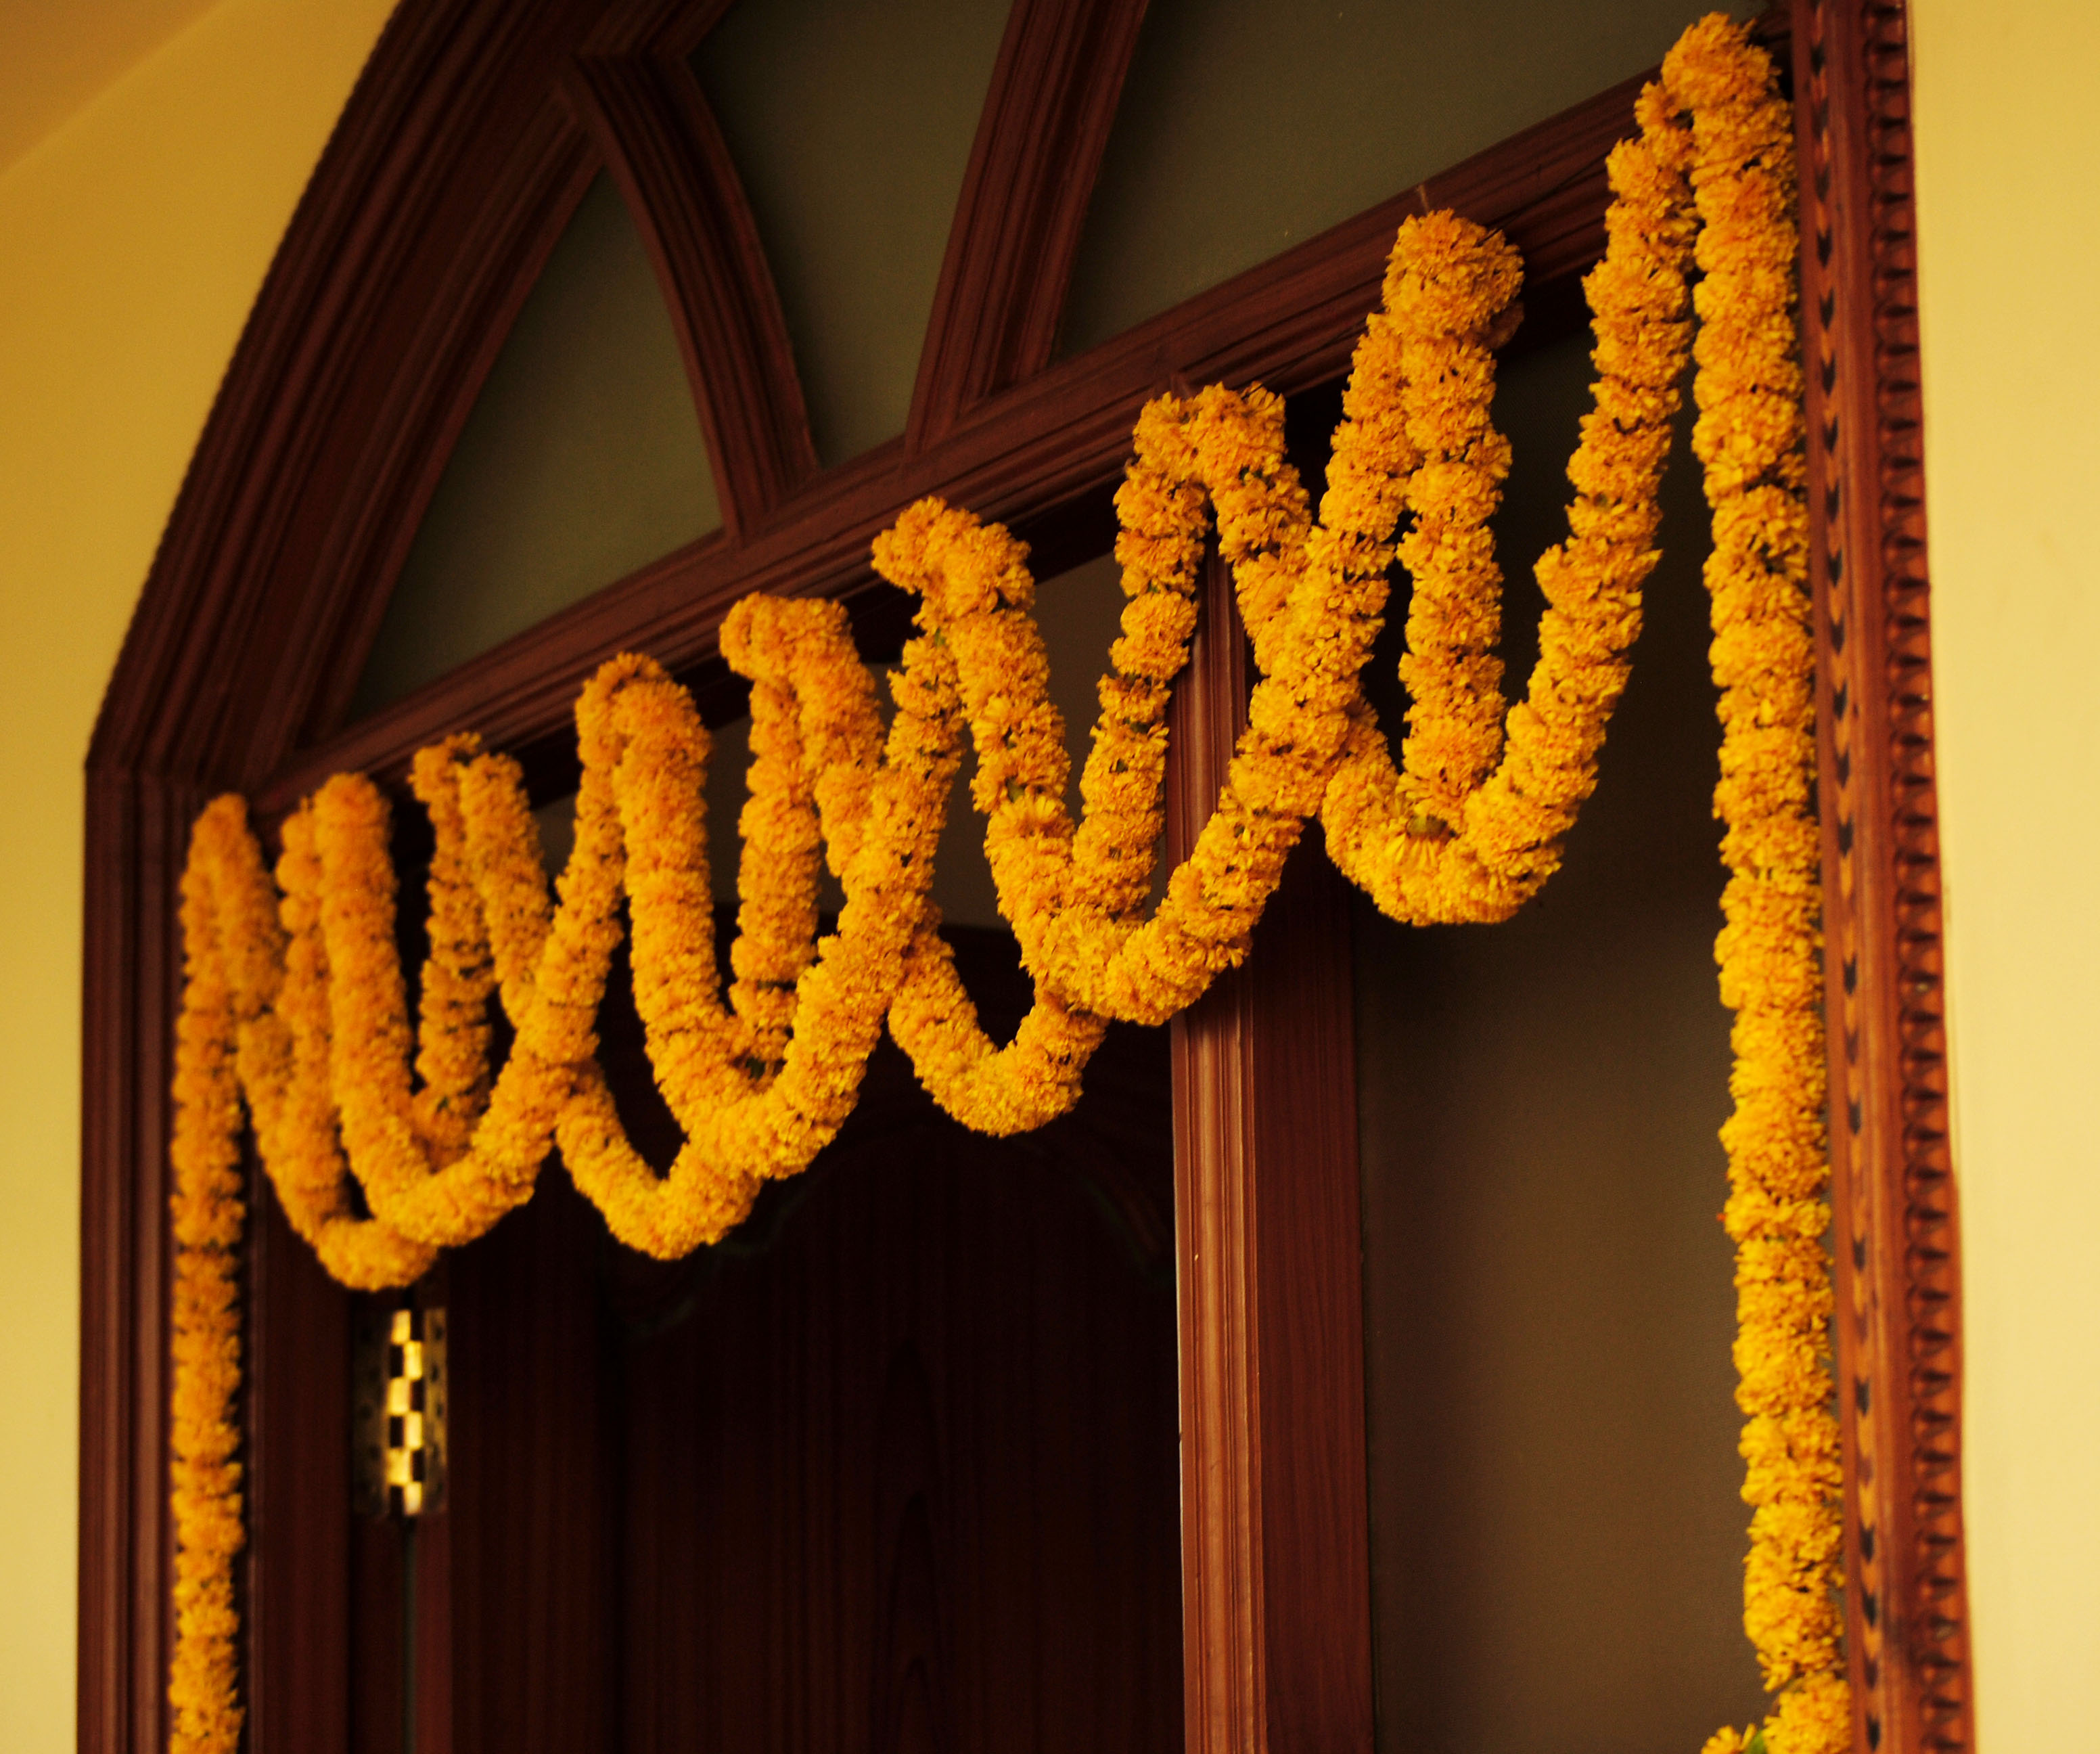 1000+ images about thoranam on Pinterest | Diwali, Search and Coconut